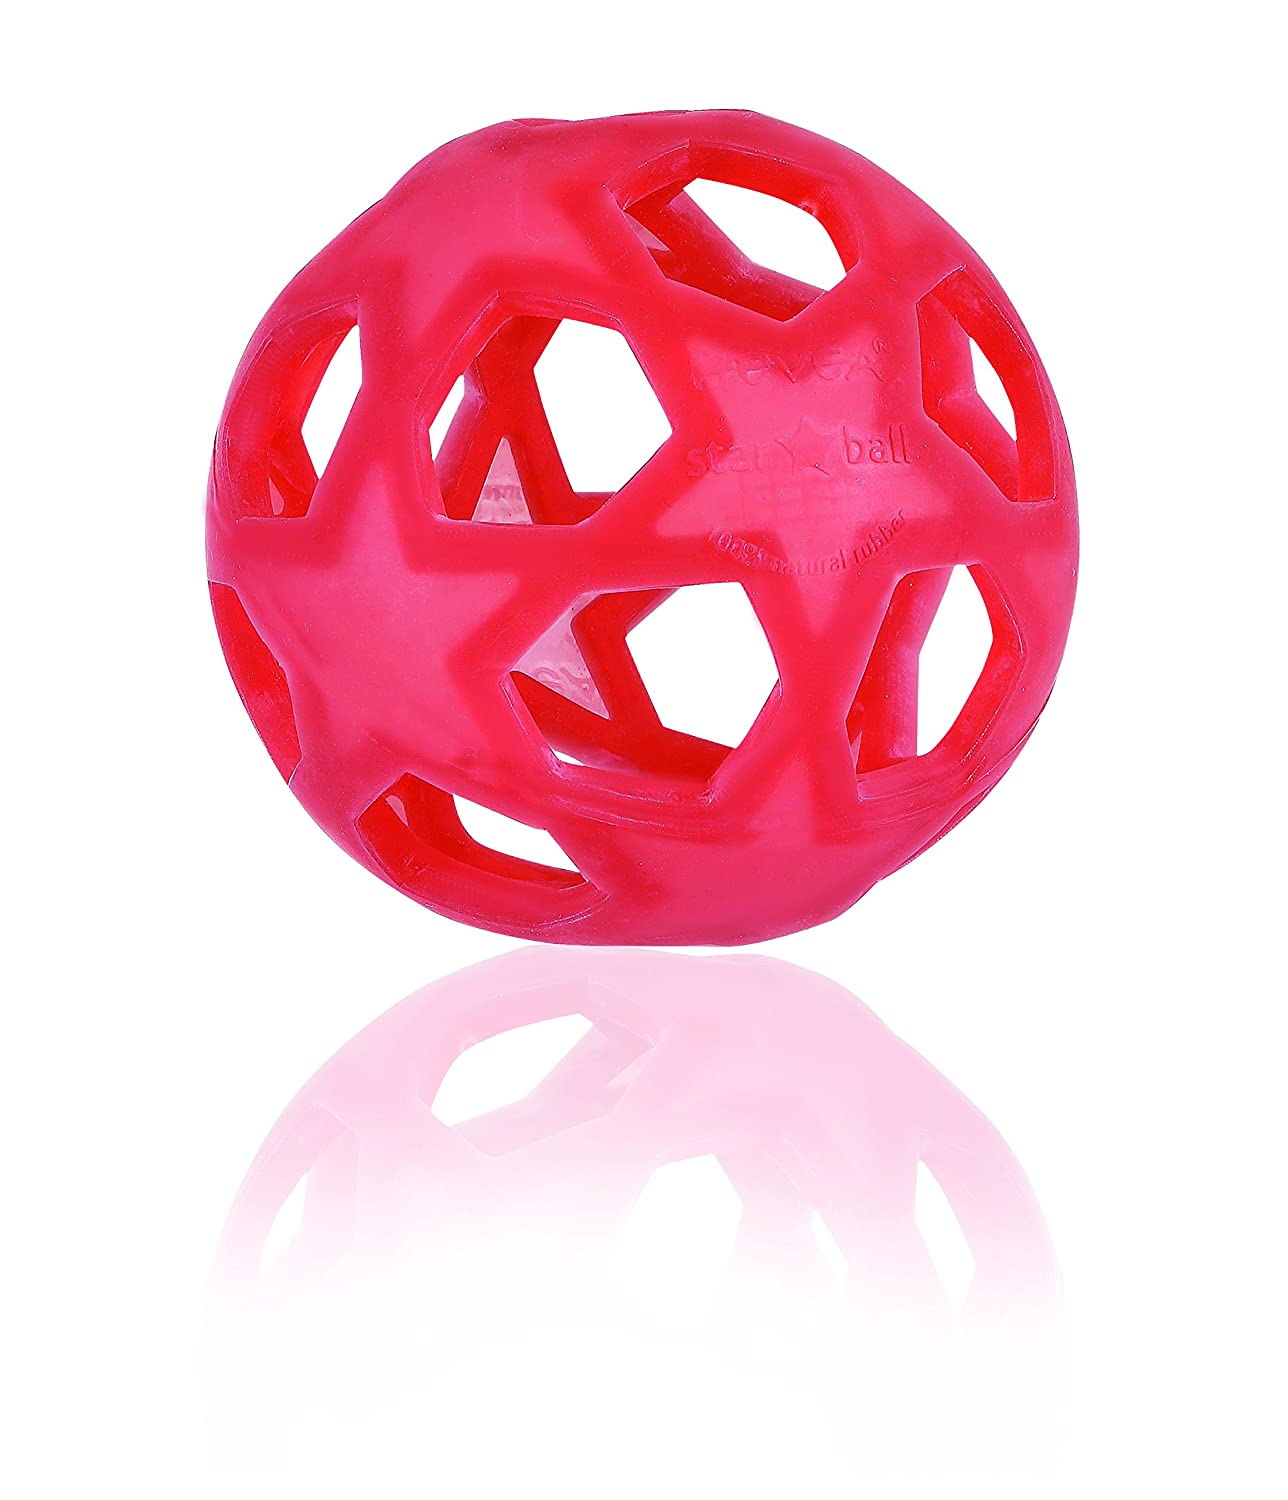 Tactile HEVEA Non-Toxic, Natural Rubber Star Ball, Raspberry Red, Squeezable & Fun, Plastic-Free